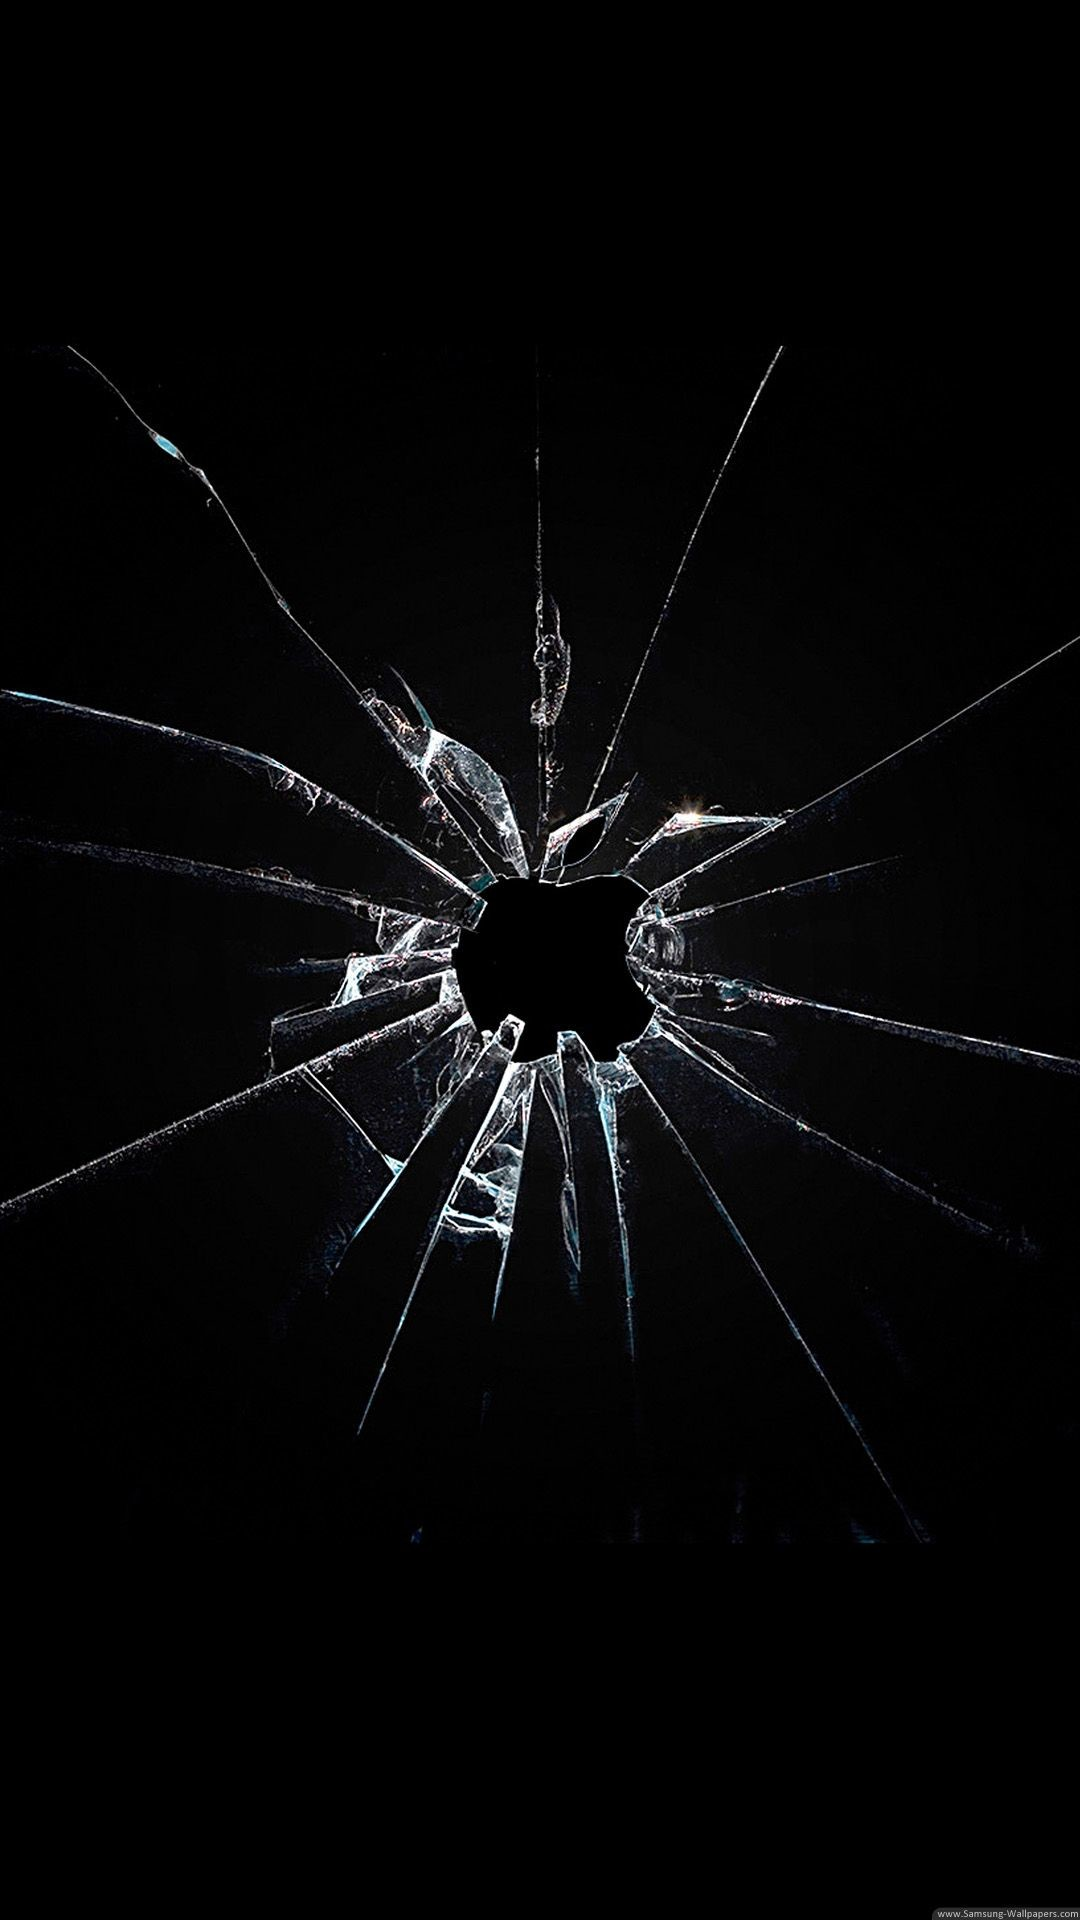 Cracked computer screen wallpaper 57 images - Cool screensavers for cracked screens ...